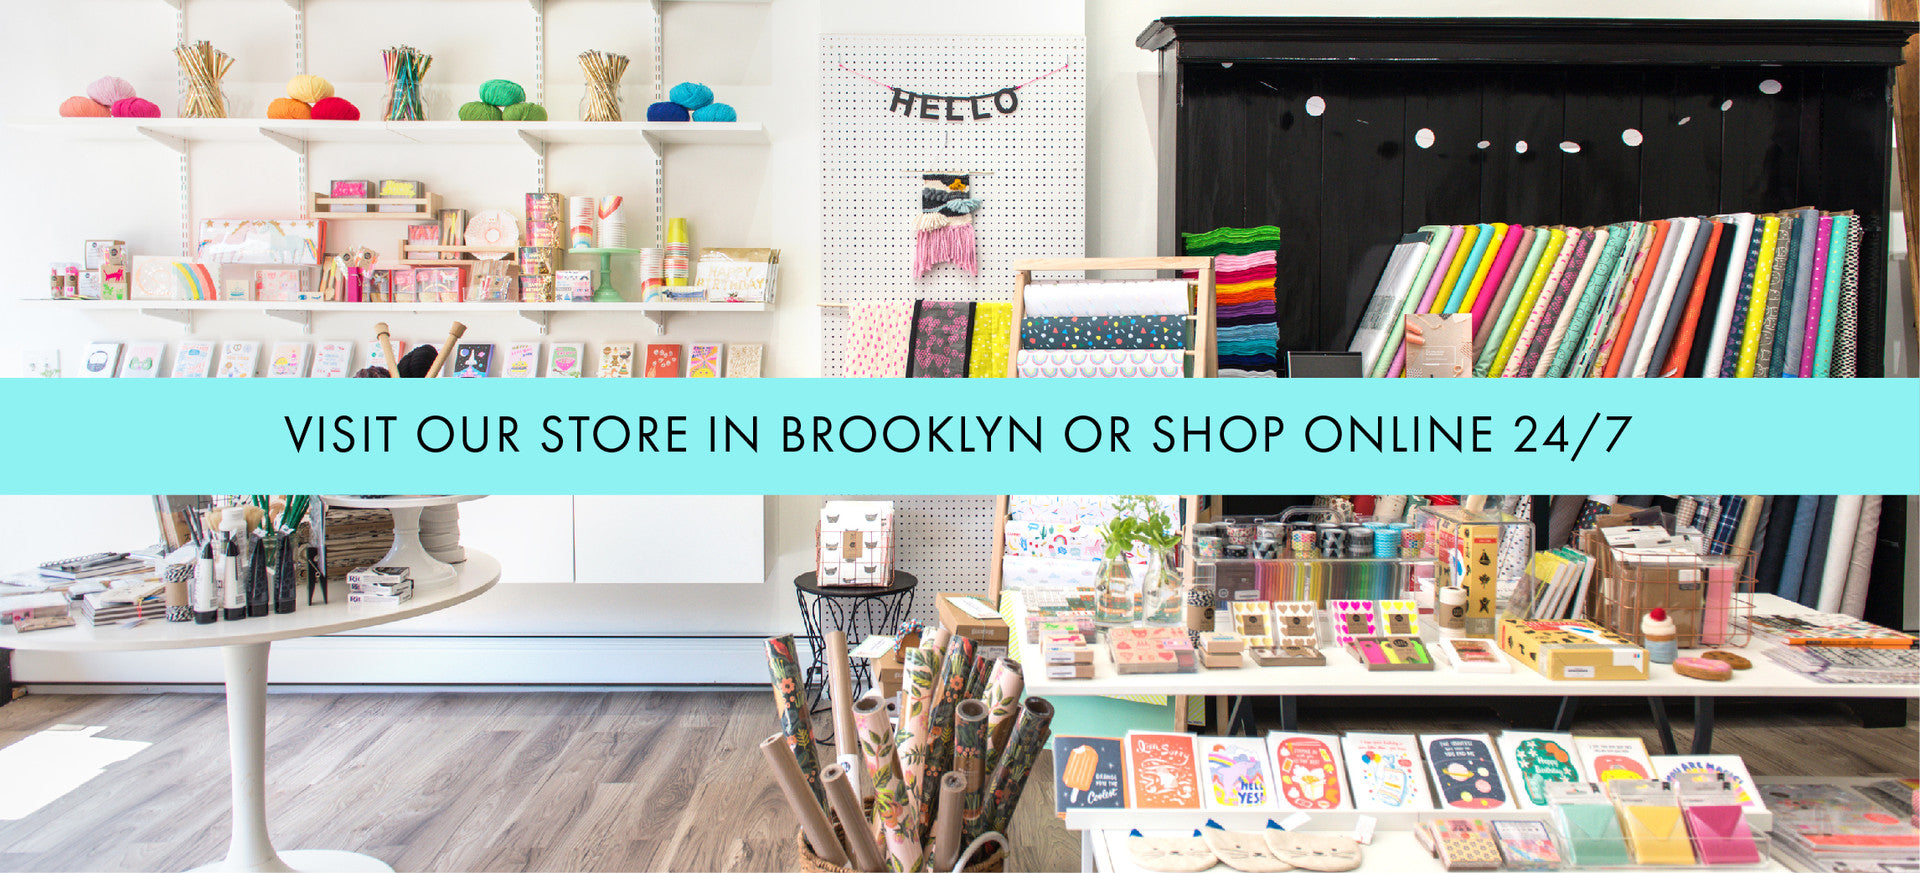 Visit our store in Brooklyn